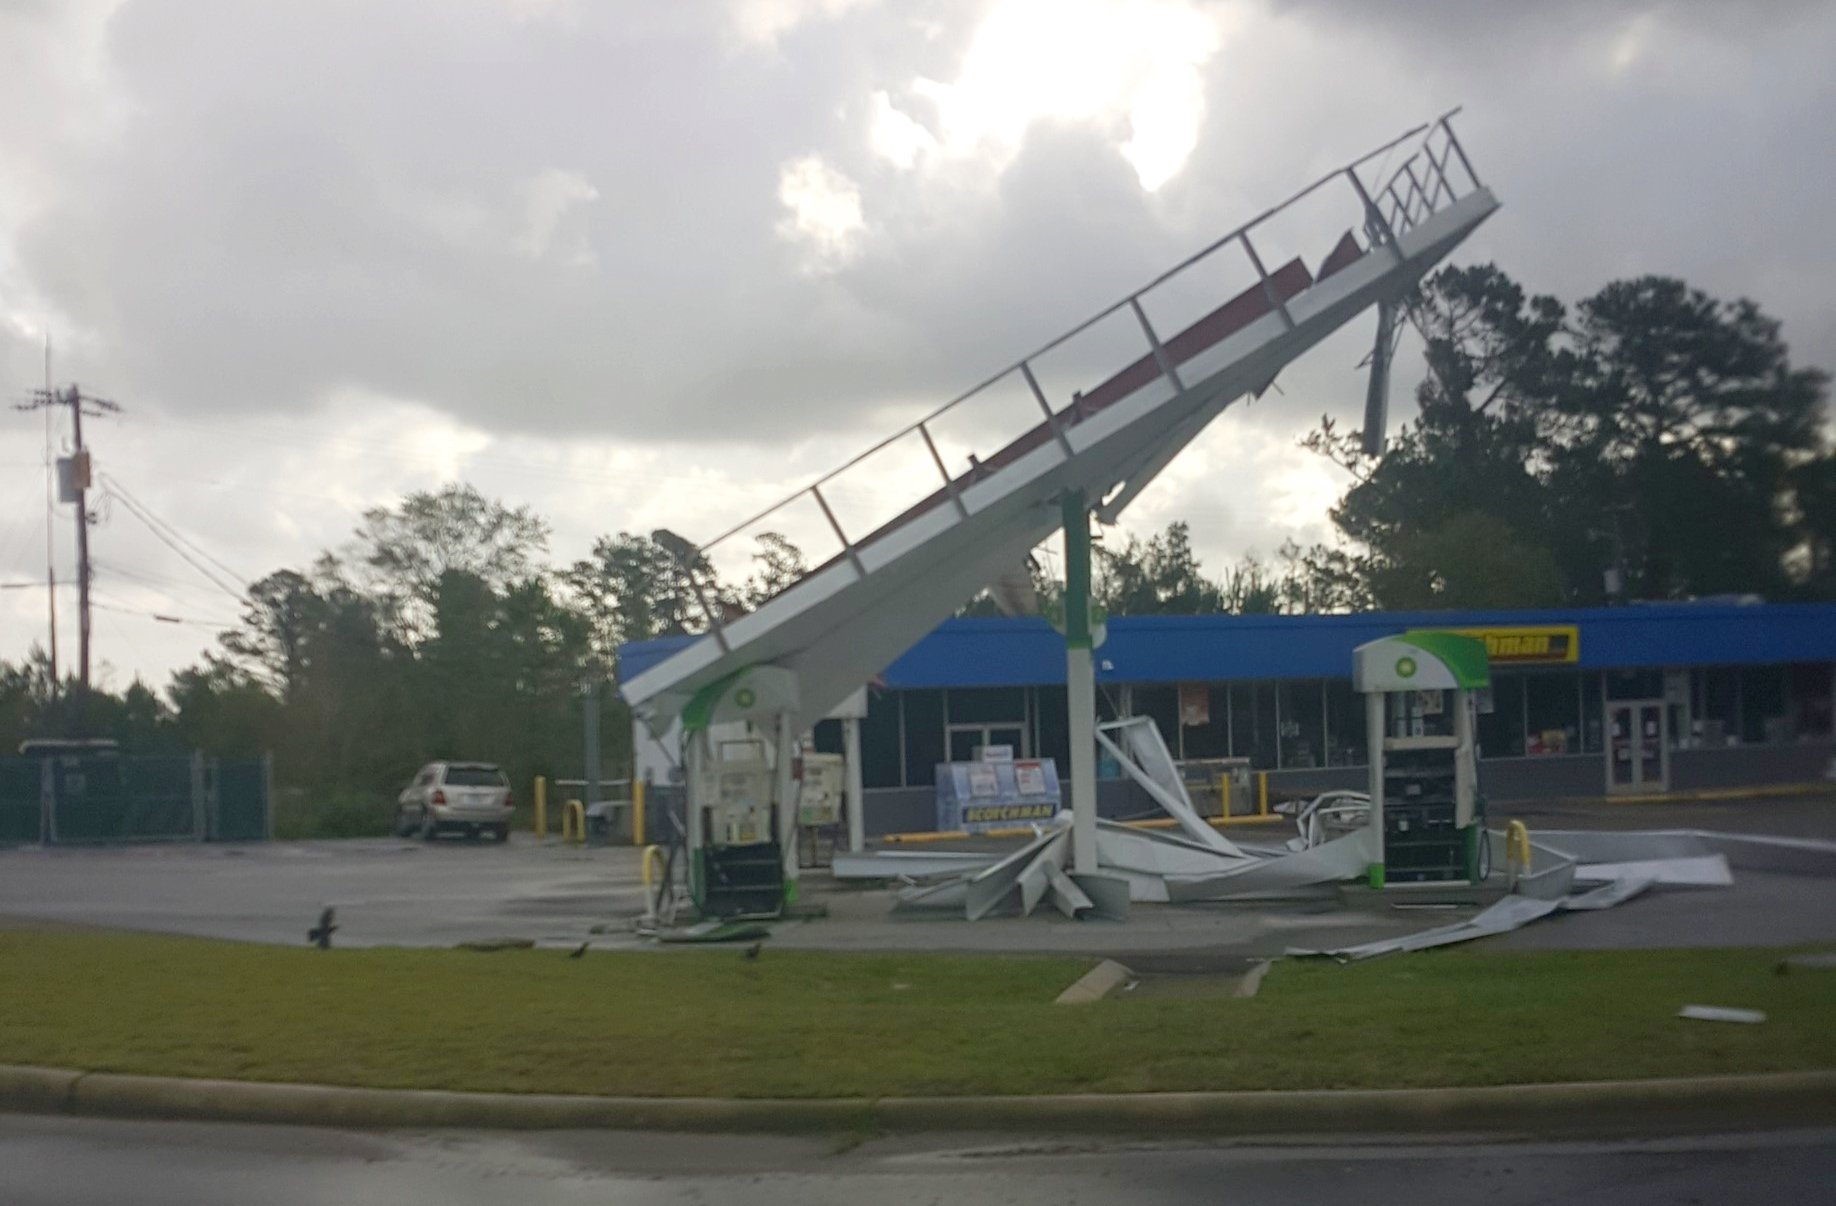 A local Wilmington gas station's awning was destroyed by Hurricane Florence's winds. (Photo credit: Vicky Oliva/NWS)